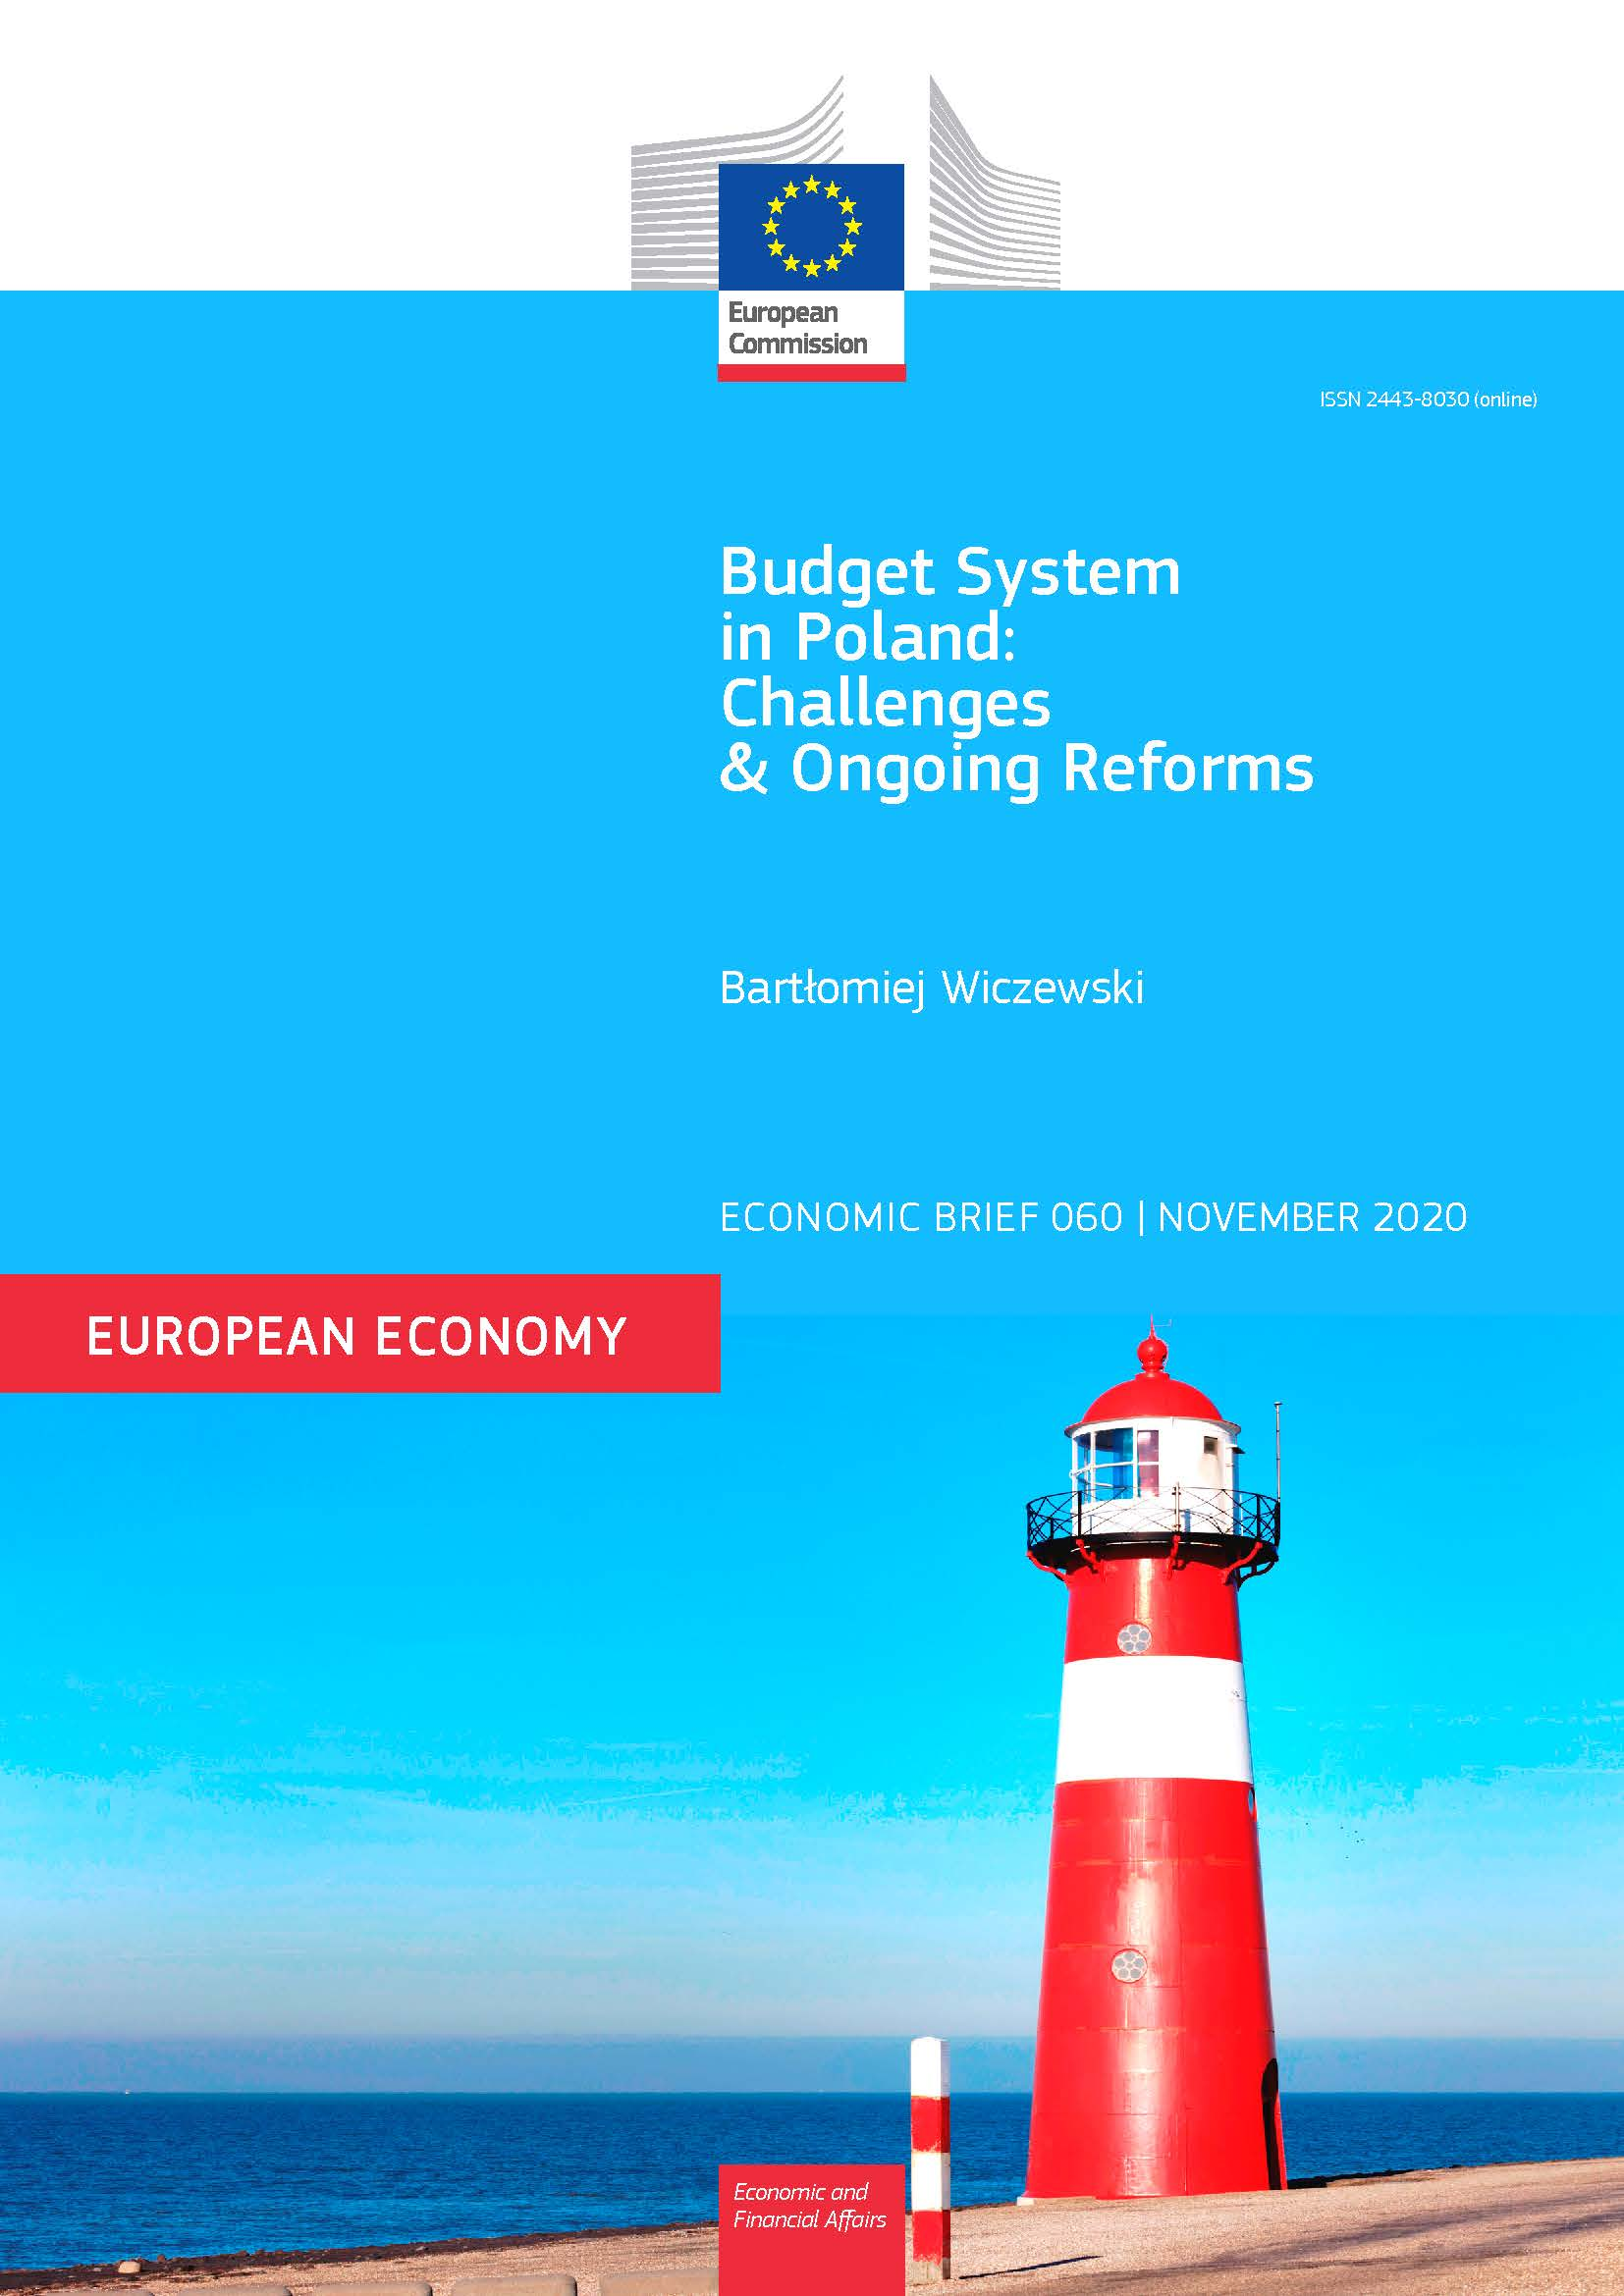 Budget System in Poland: Challenges and Ongoing Reforms